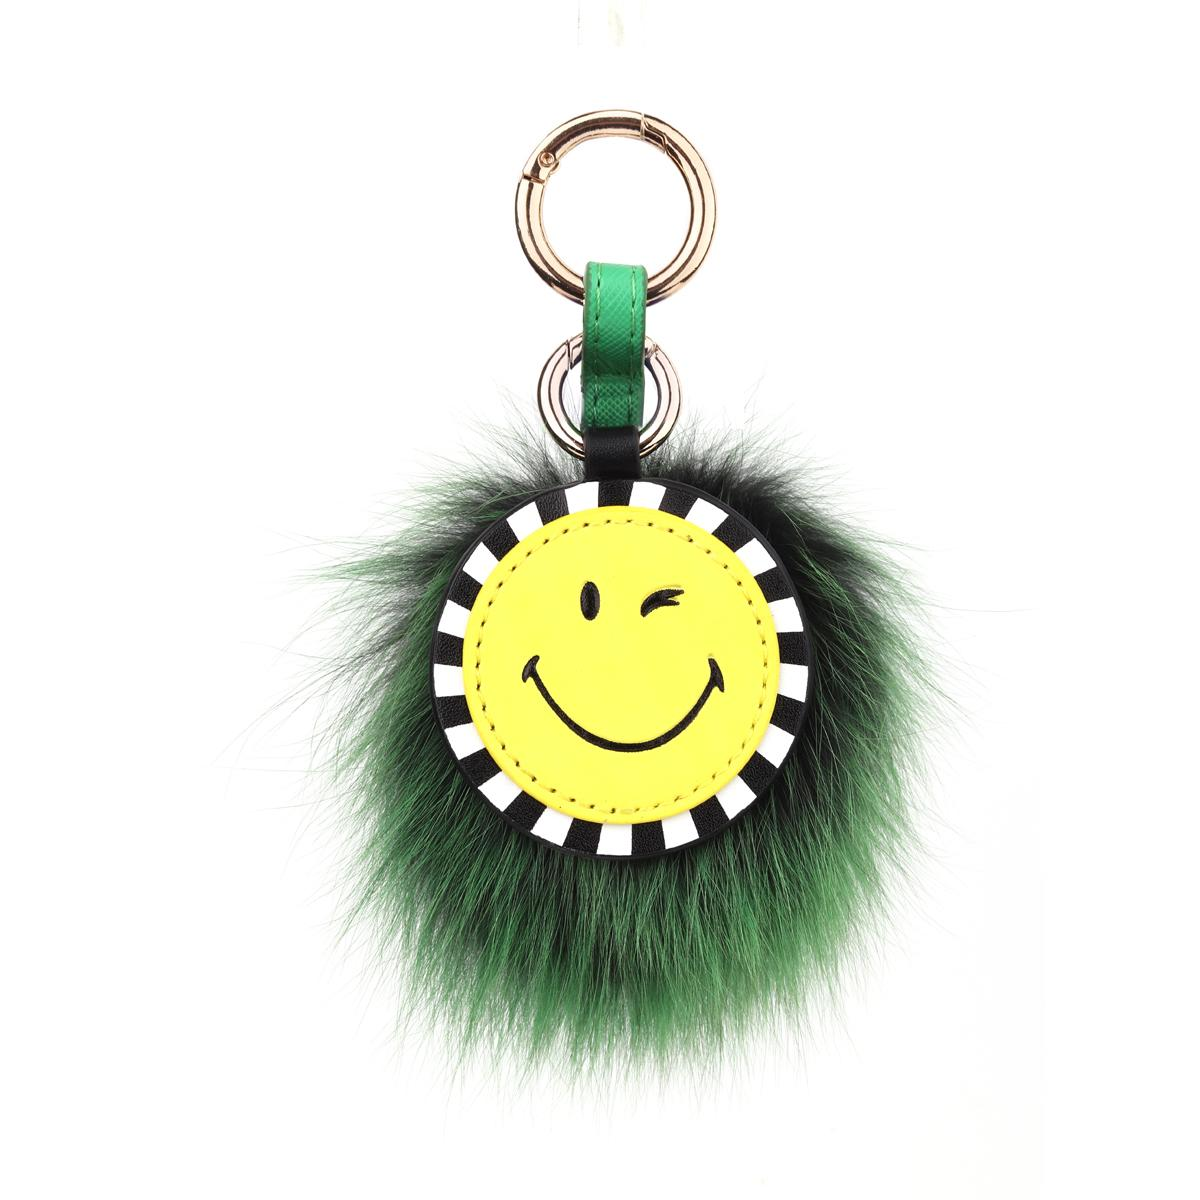 Smileyworld Shoppe New Products Women s Bag Cute Smiley Fuzzy Ball Pendant  Accessories Keychain Gift b2dcde240